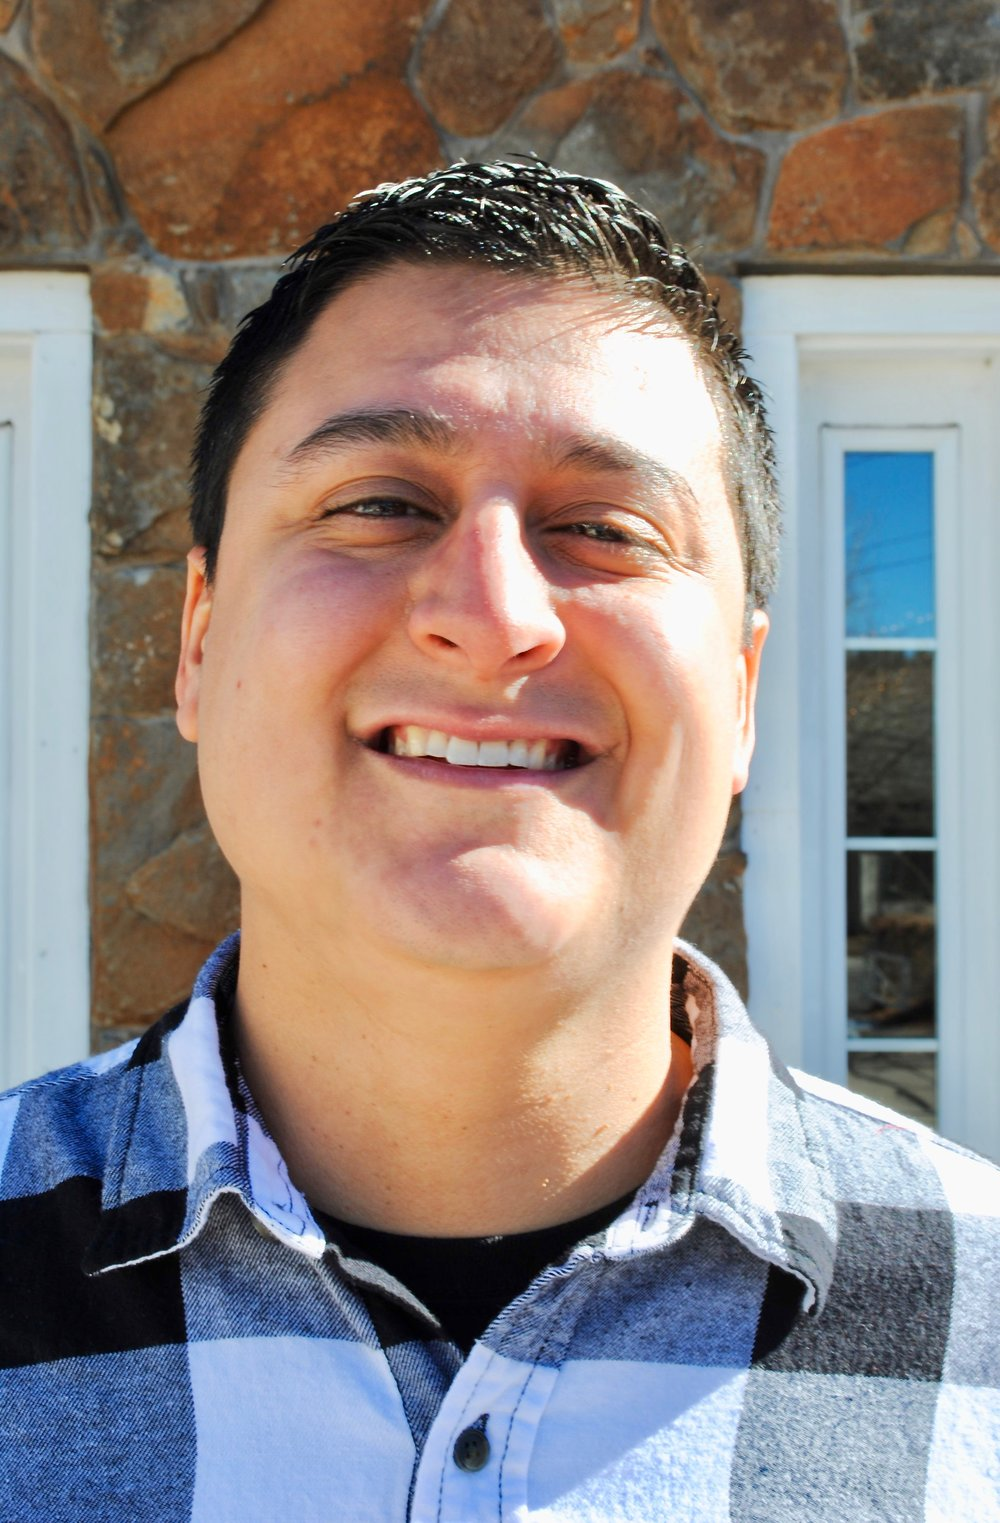 Gabriel Nava - Gabriel Nava is an Elder and Head Deacon at Flagstaff SDA Church. He shares his life with his wife, Sofia Wolhein, and daughter Lucia. He enjoys reading, hiking, running, soccer, basketball (generally all outdoor sports) as well as spending time with his family. It is Gabriel's purpose to inspire a genuine, fun and adventurous walk with Christ and to share the hope that Christ brings to everybody he encounters.